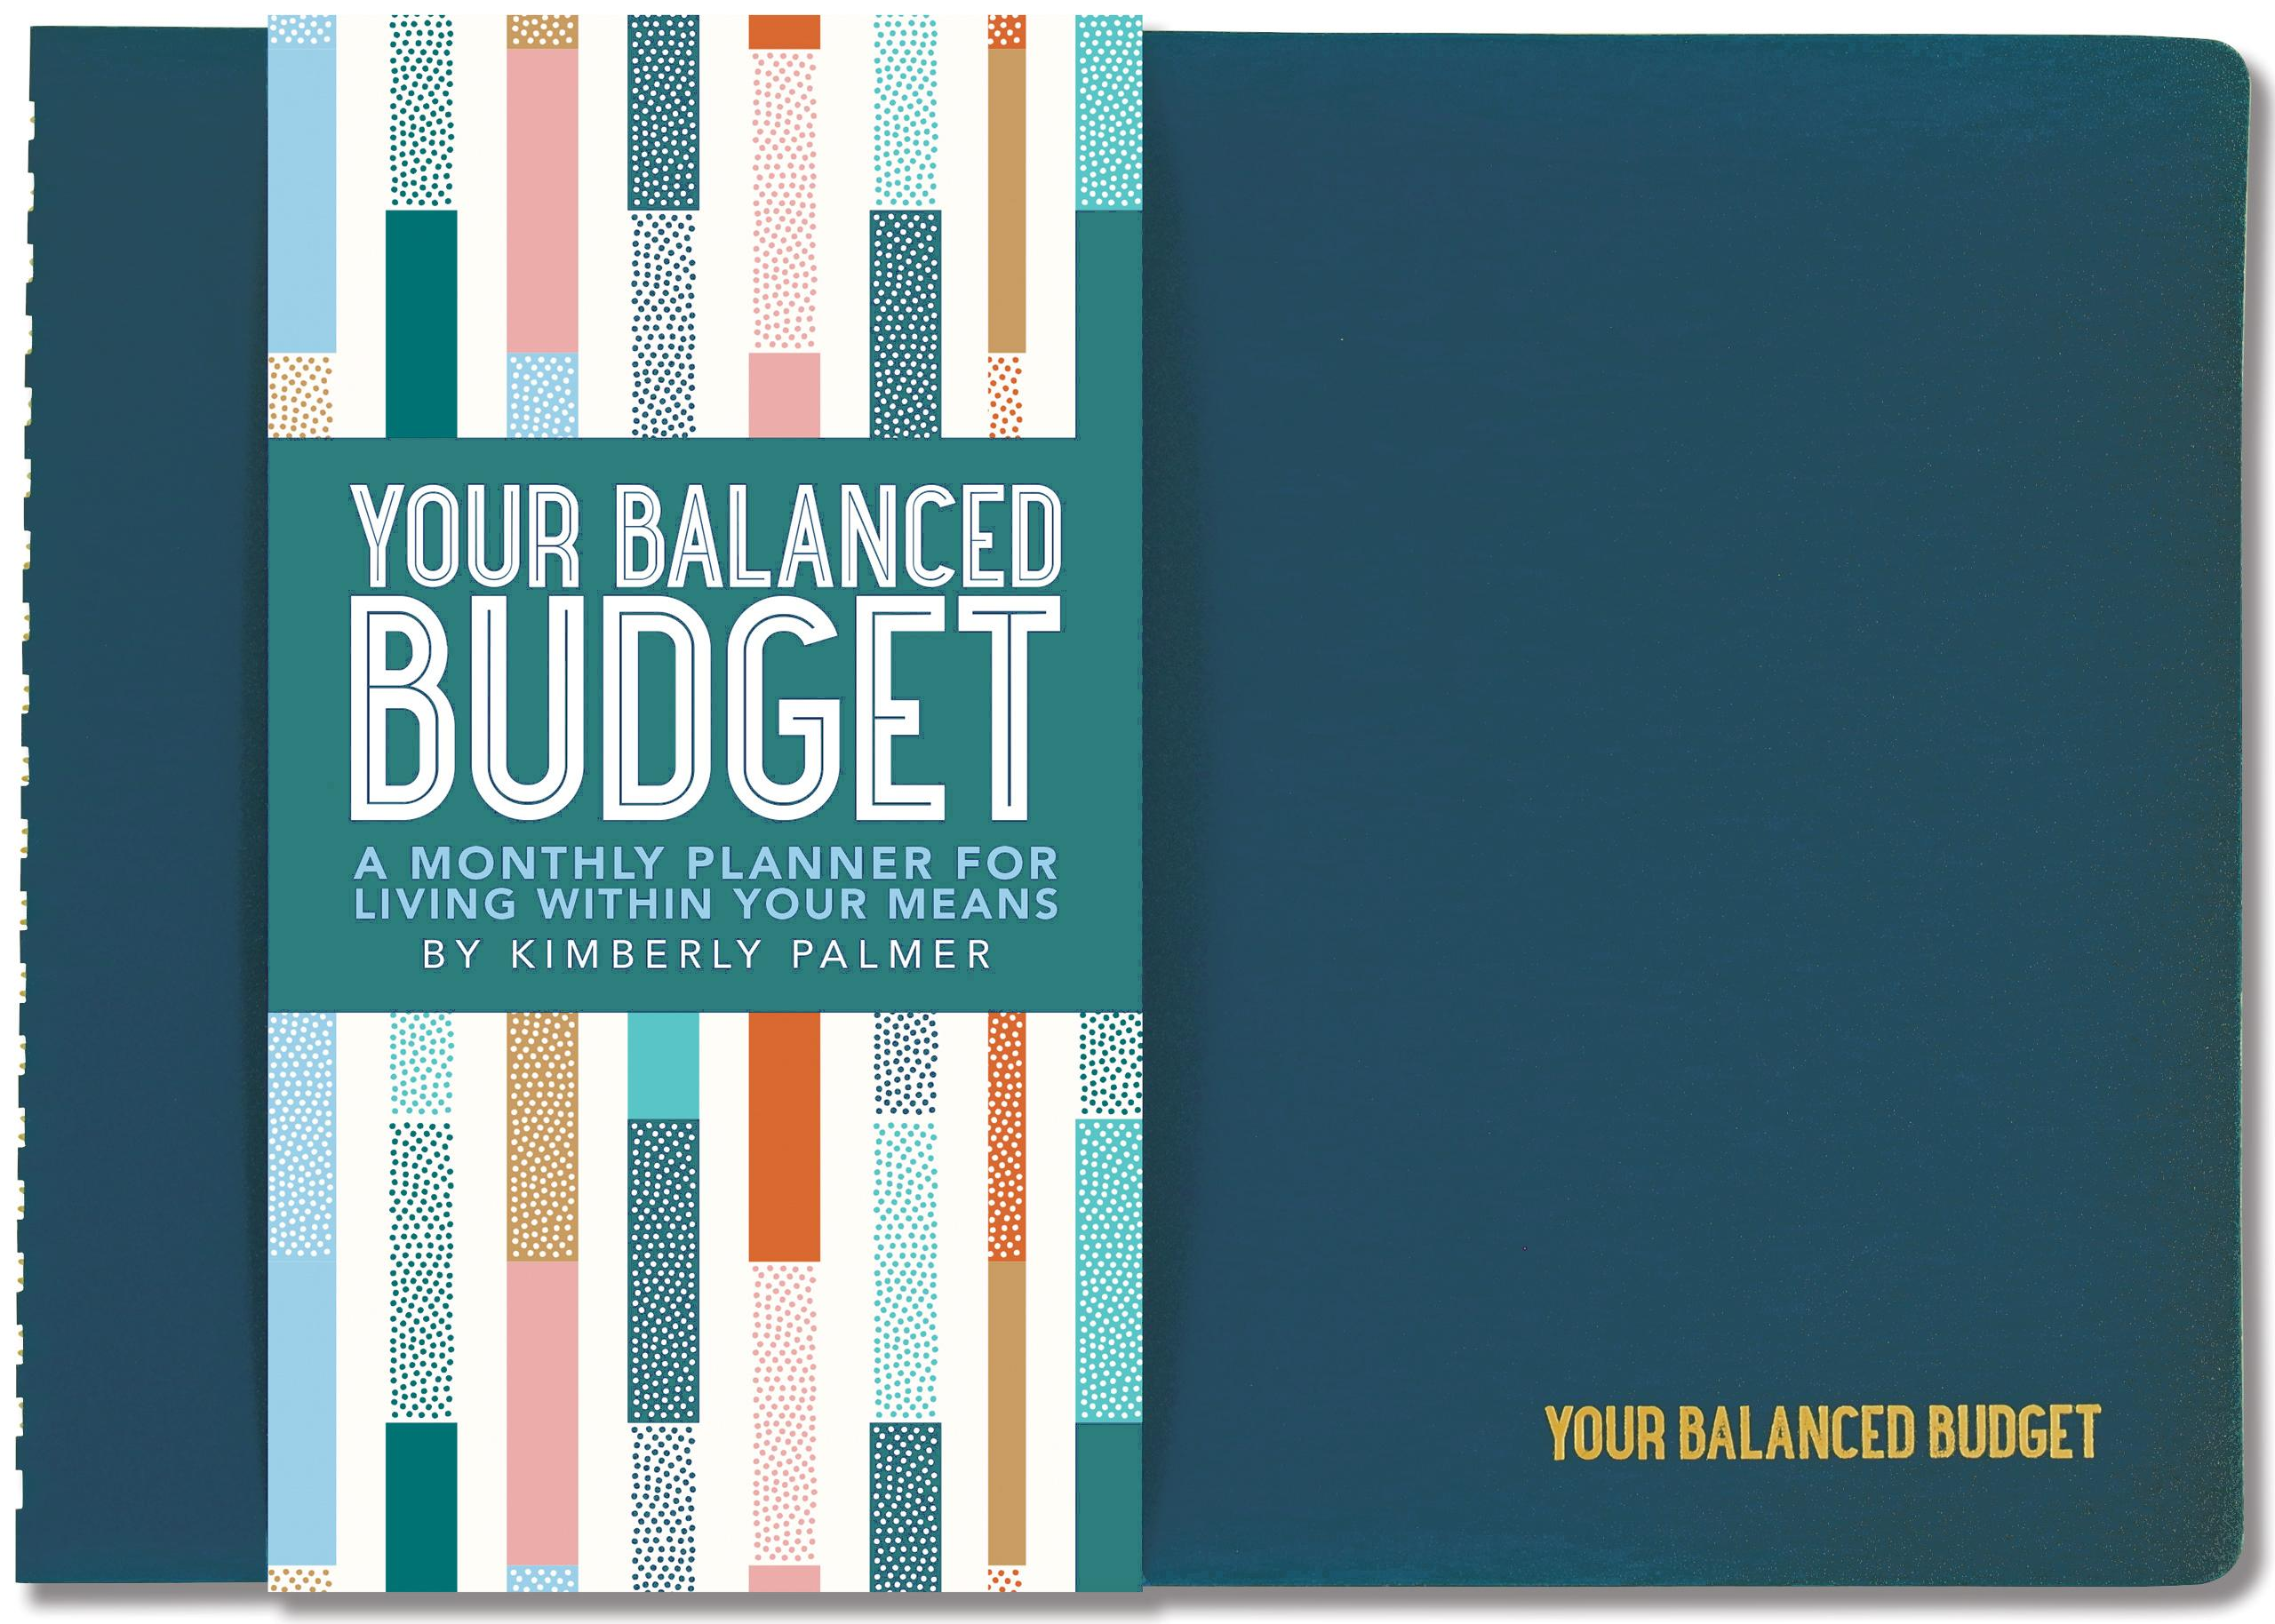 Your Balanced Budget: A Monthly Planner for Living Within Your Means (Hardcover)